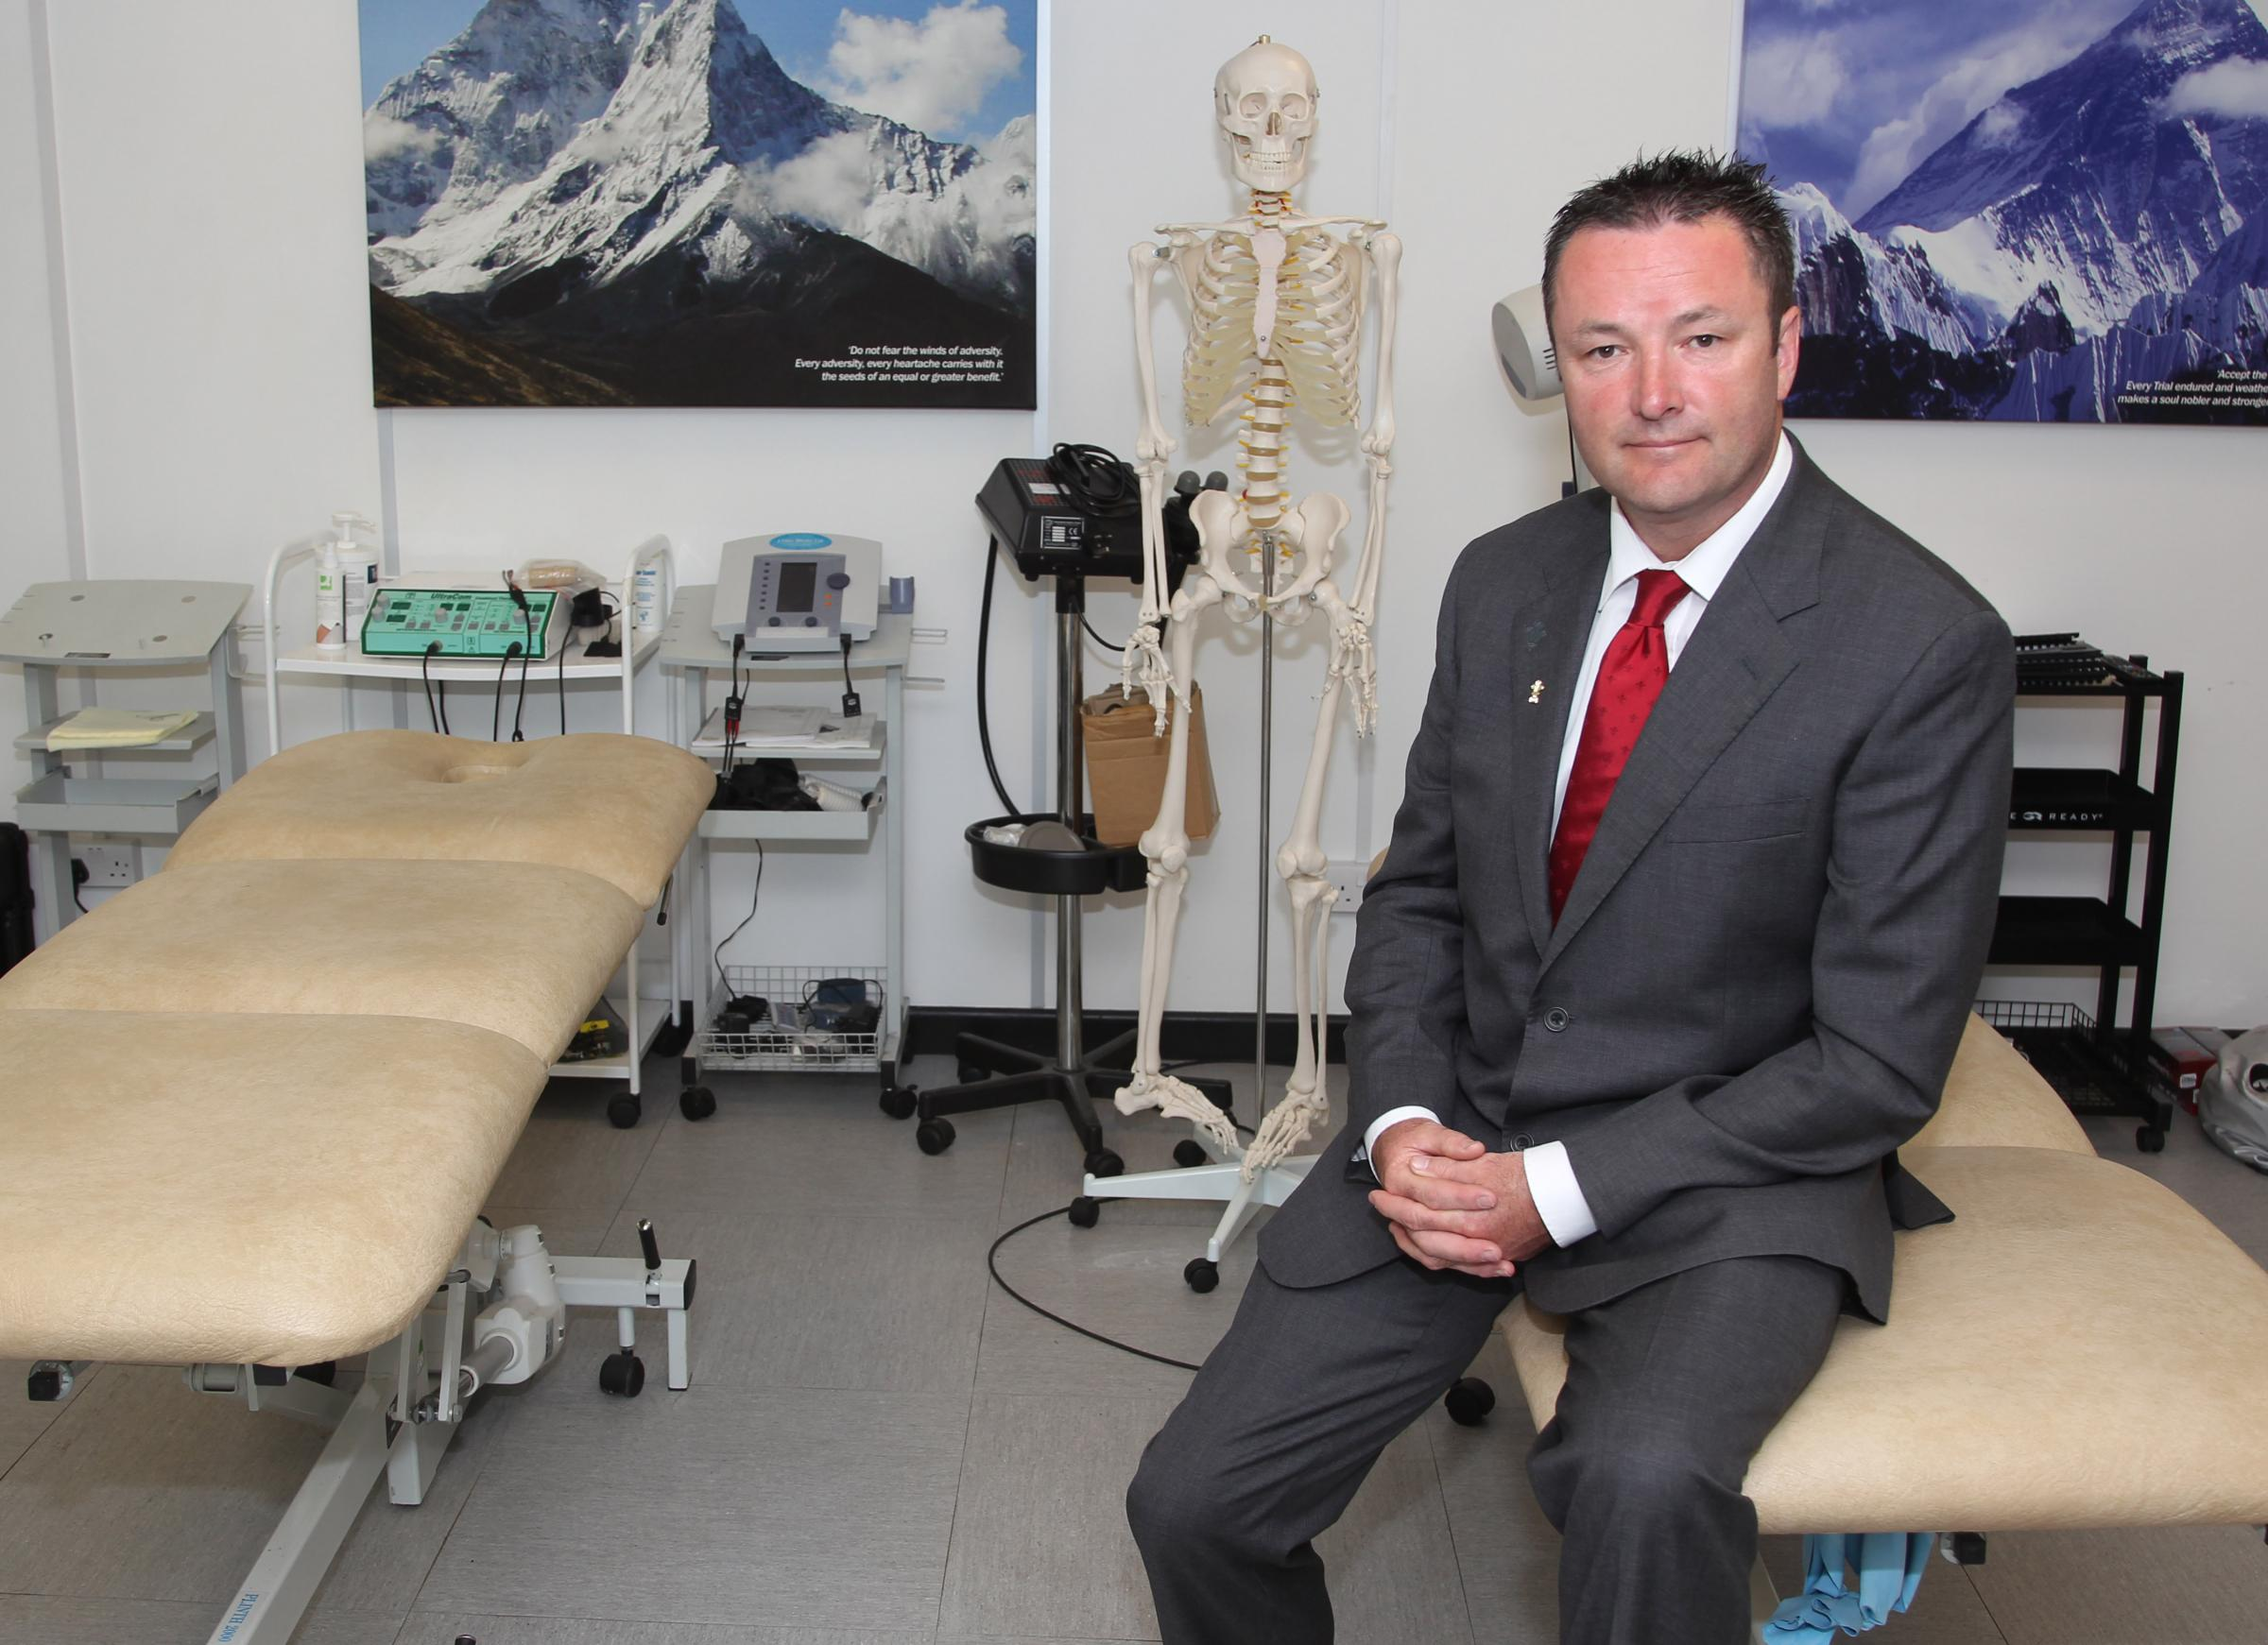 Dr Geoff Davies, WRU national team doctor to the Wales senior rugby squad has joined St Joseph's Hospital